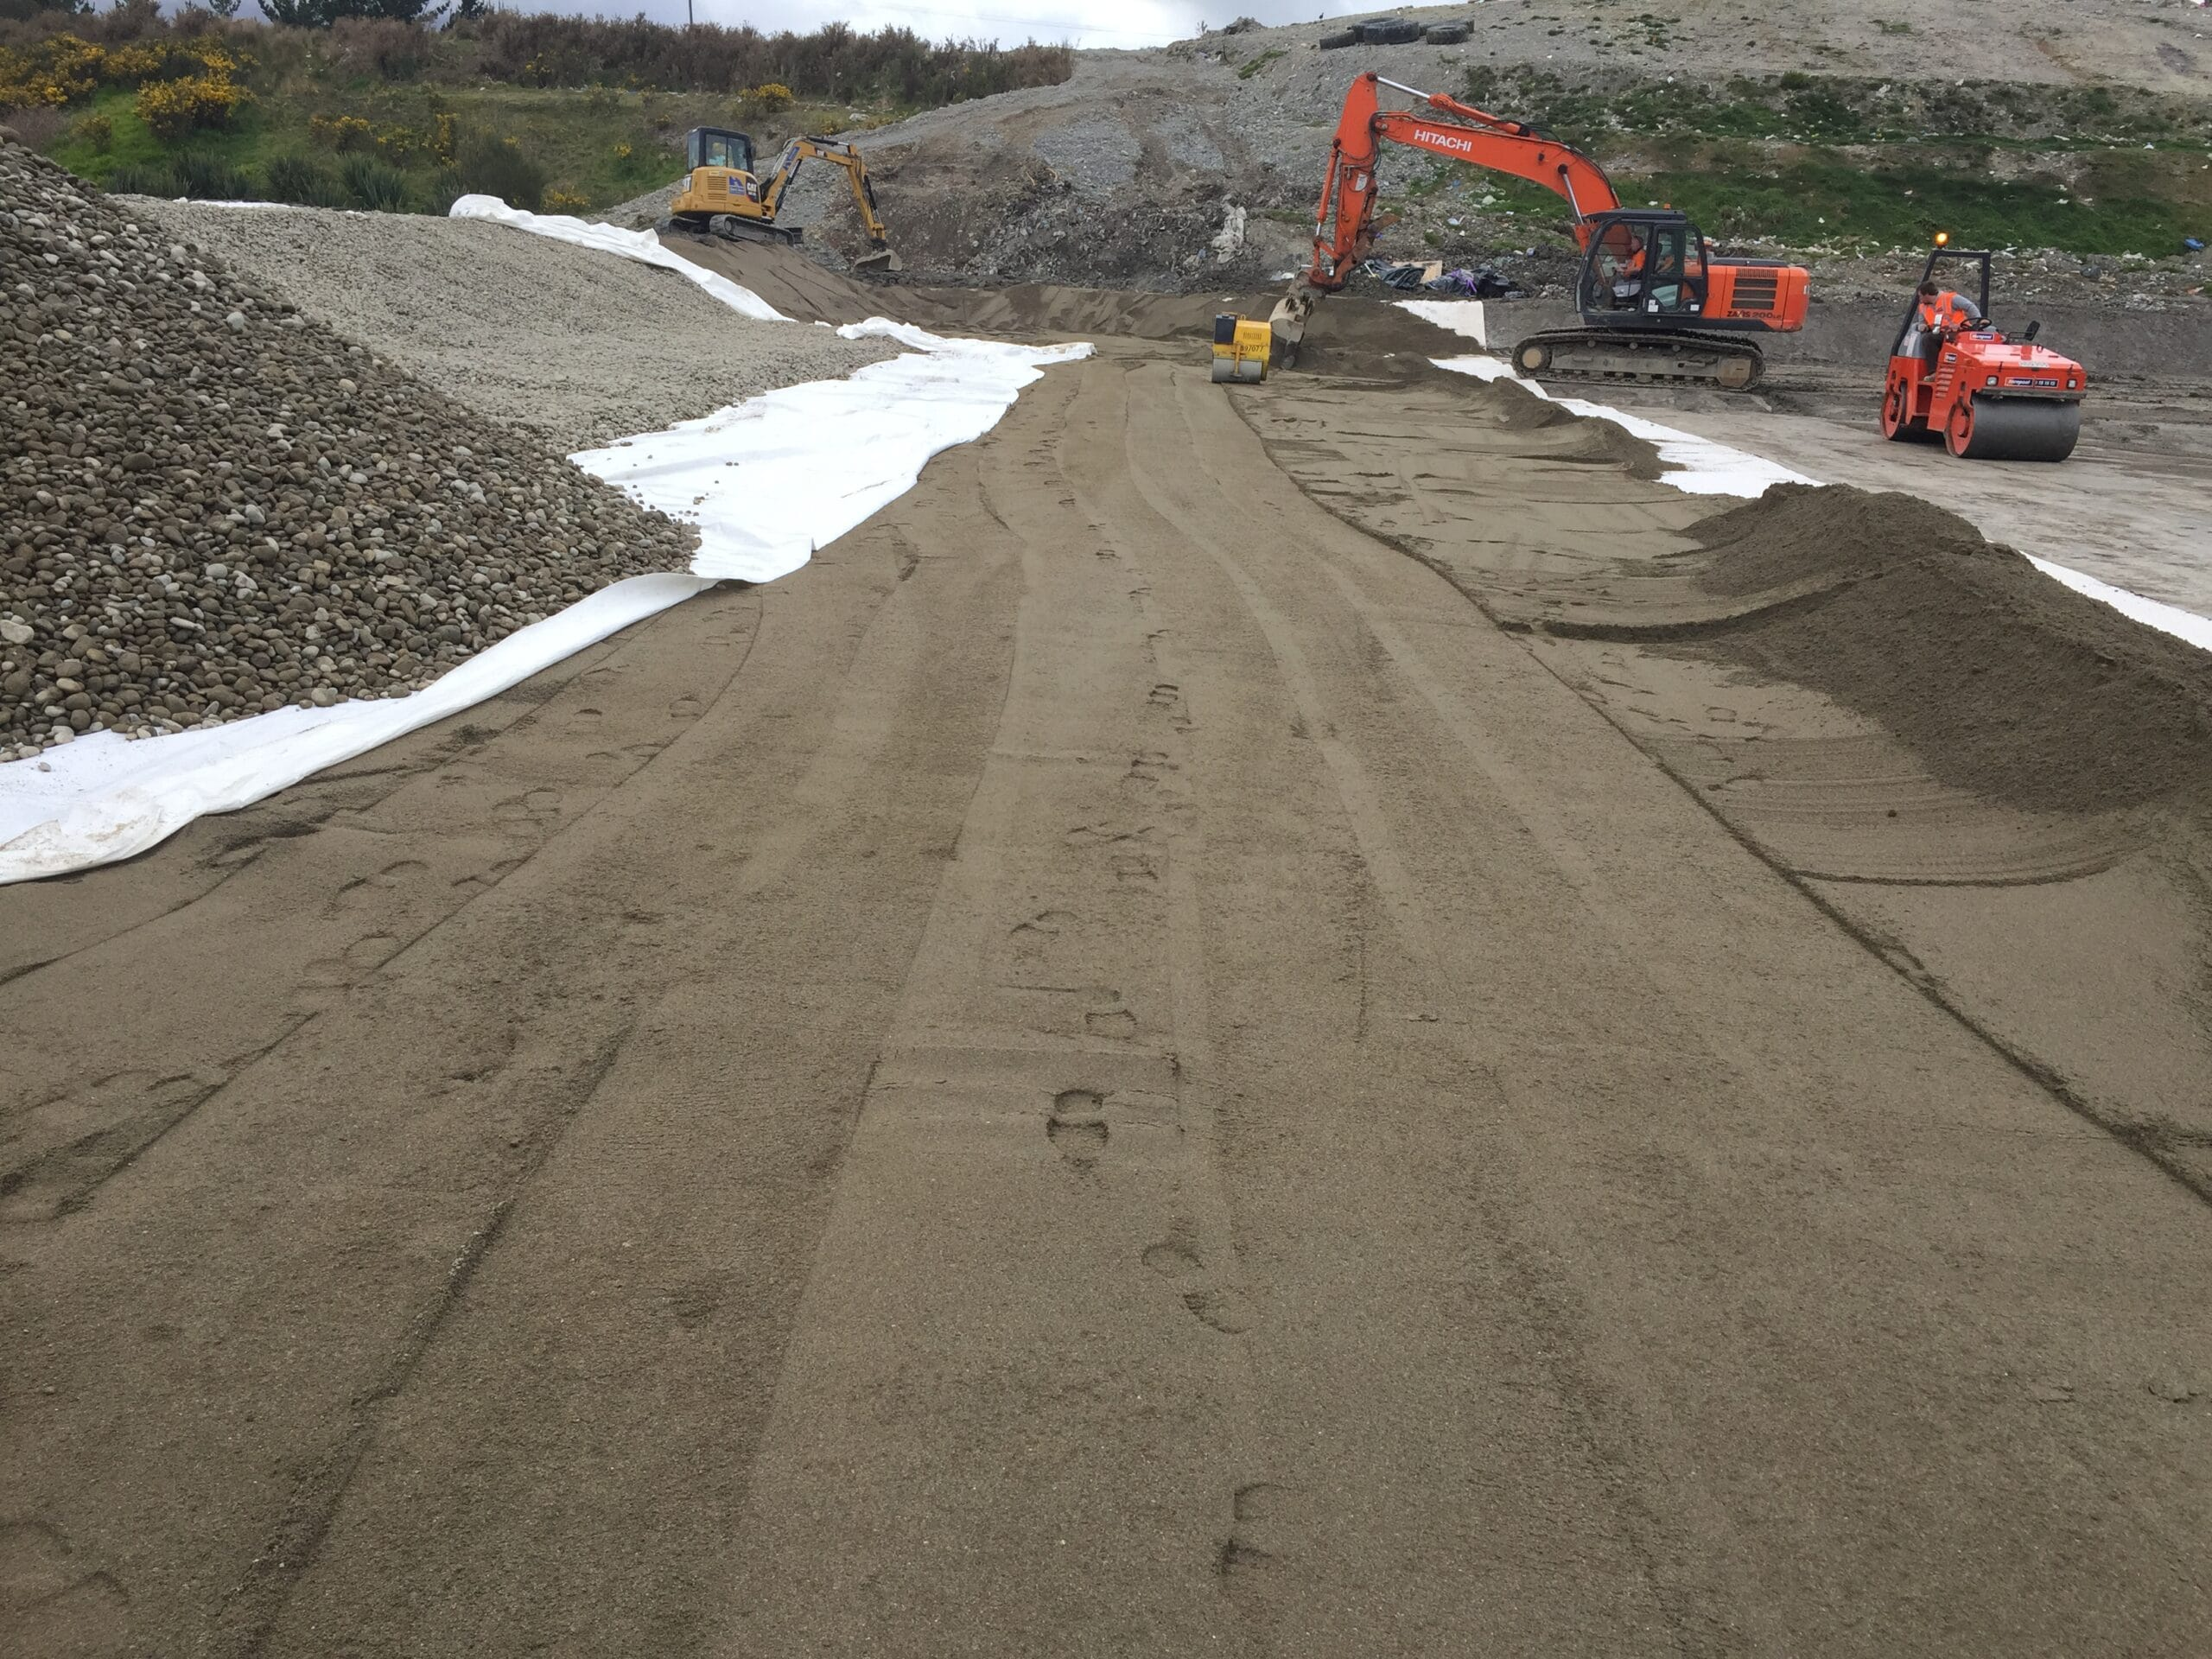 GrantHood_McLeans-Pit-Landfill-3a-8